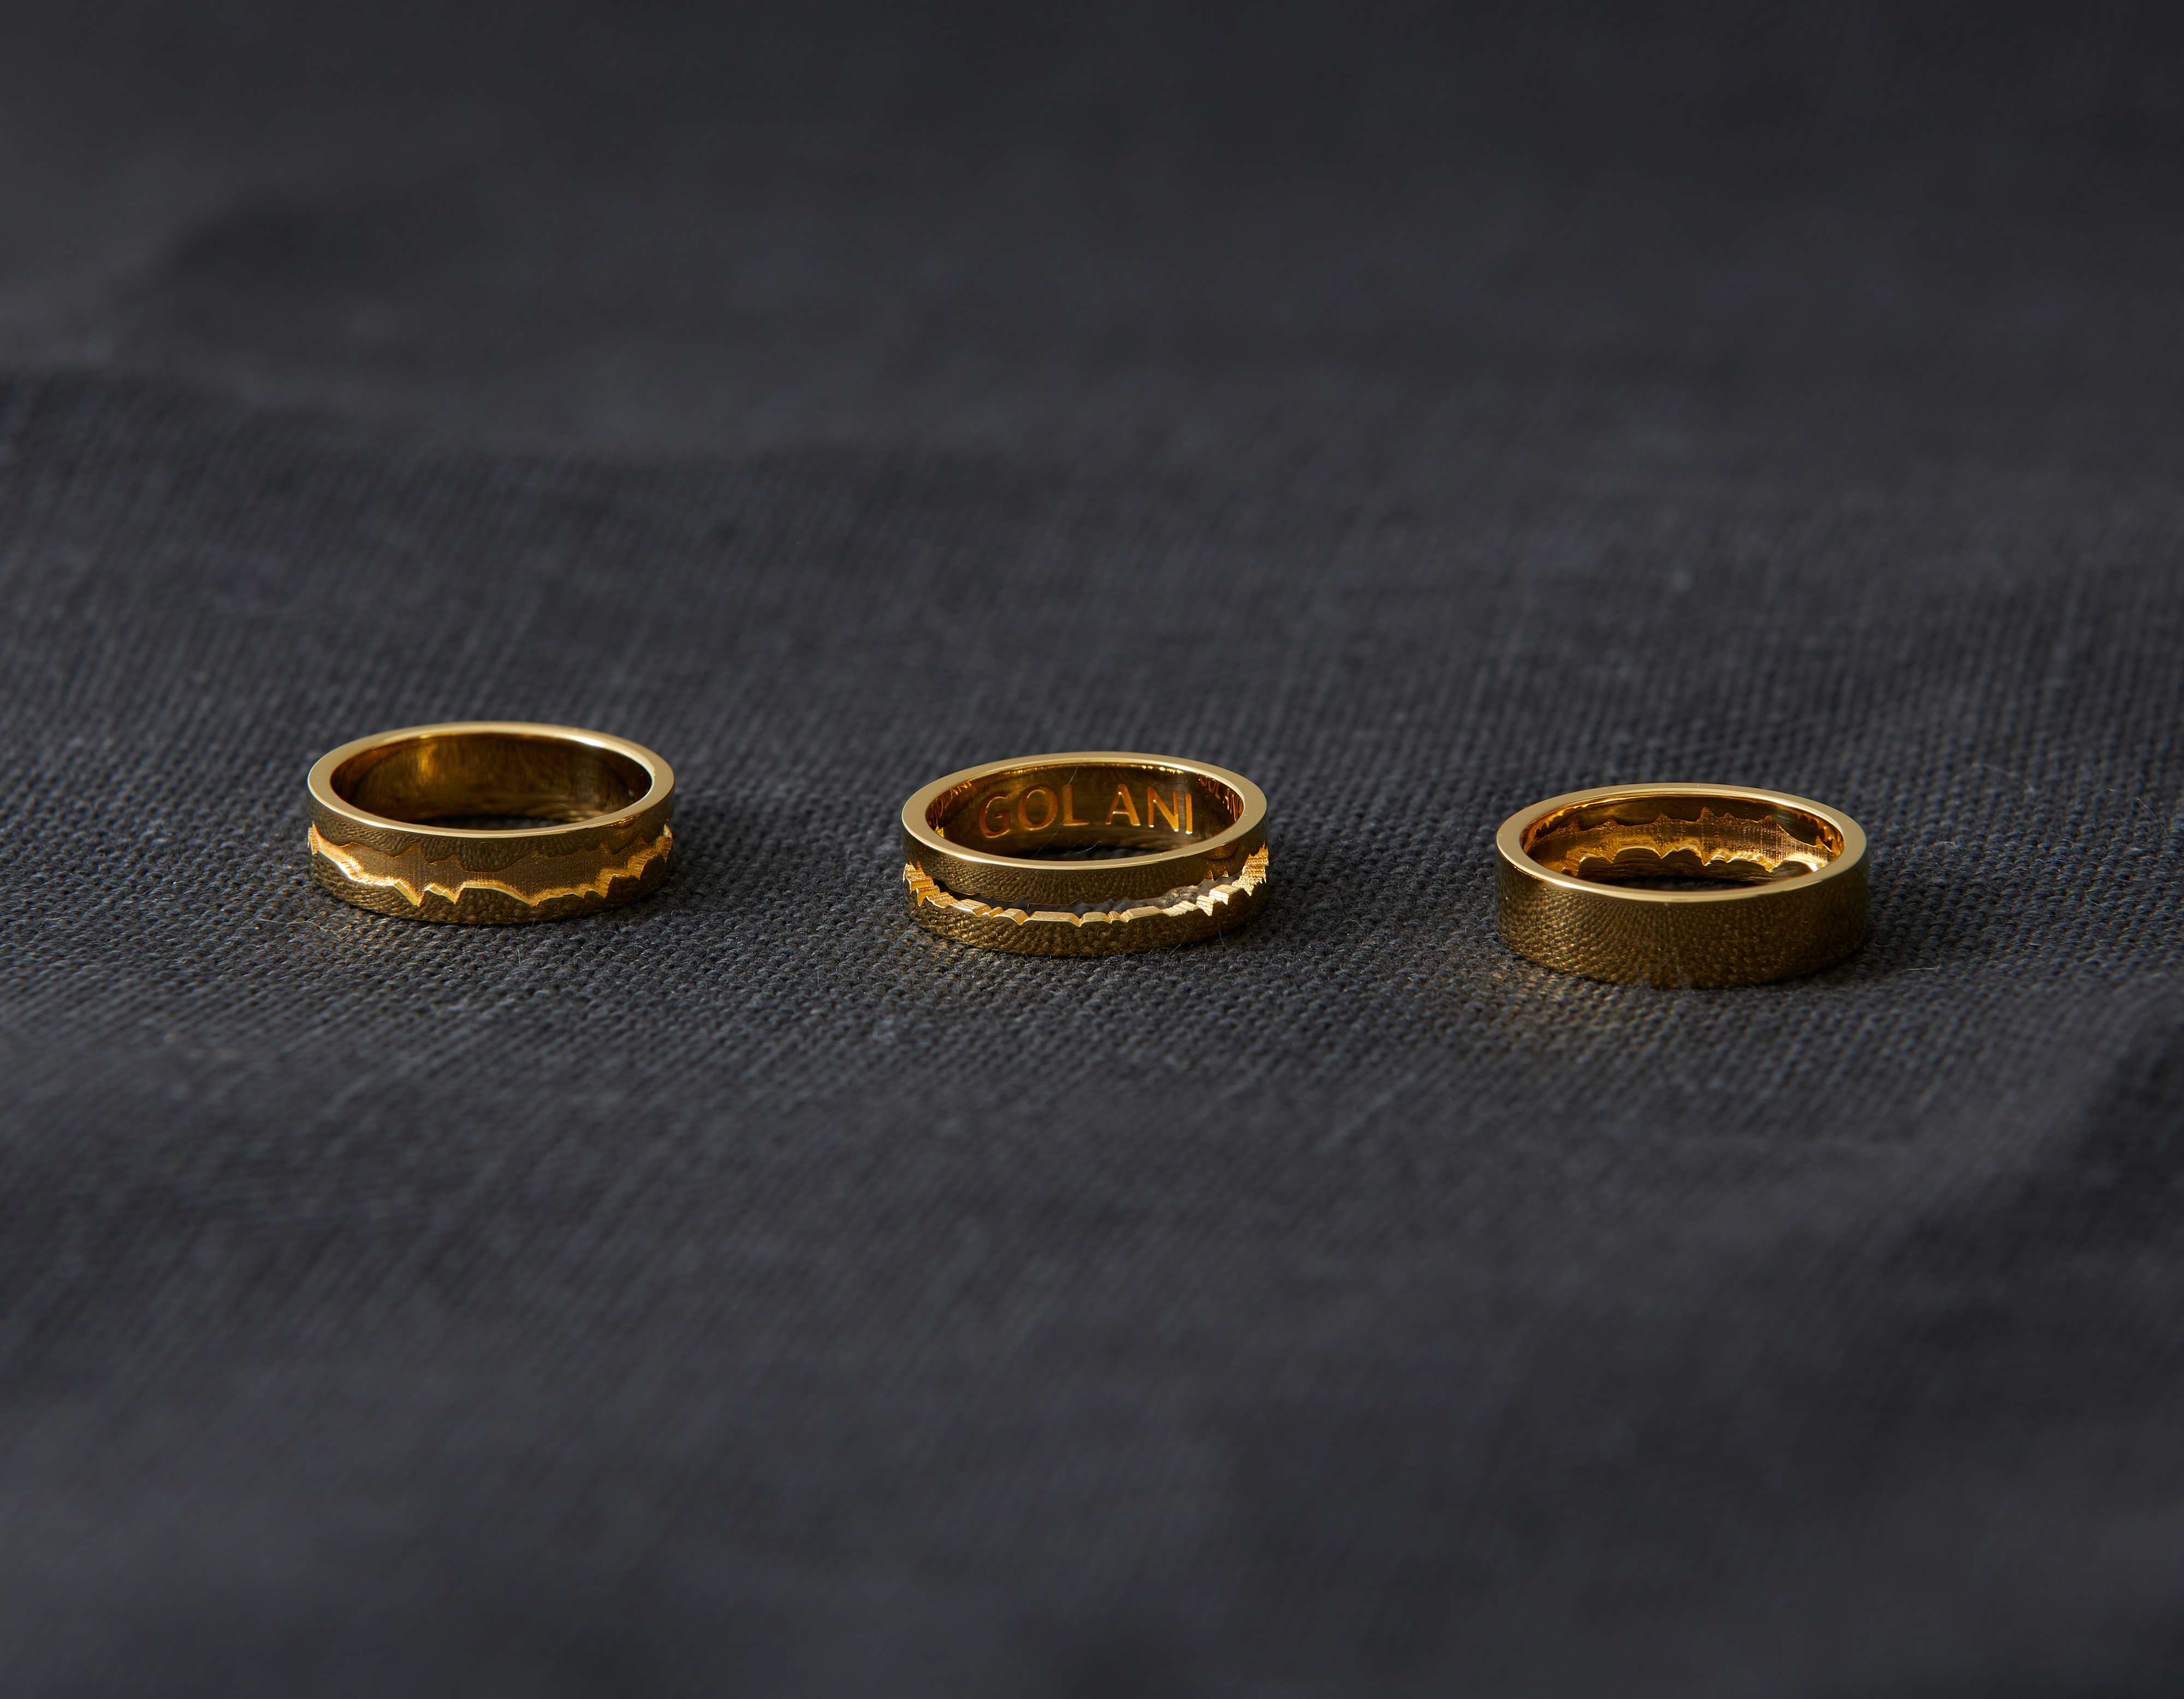 Golani wave ring collection in 14-karat gold.